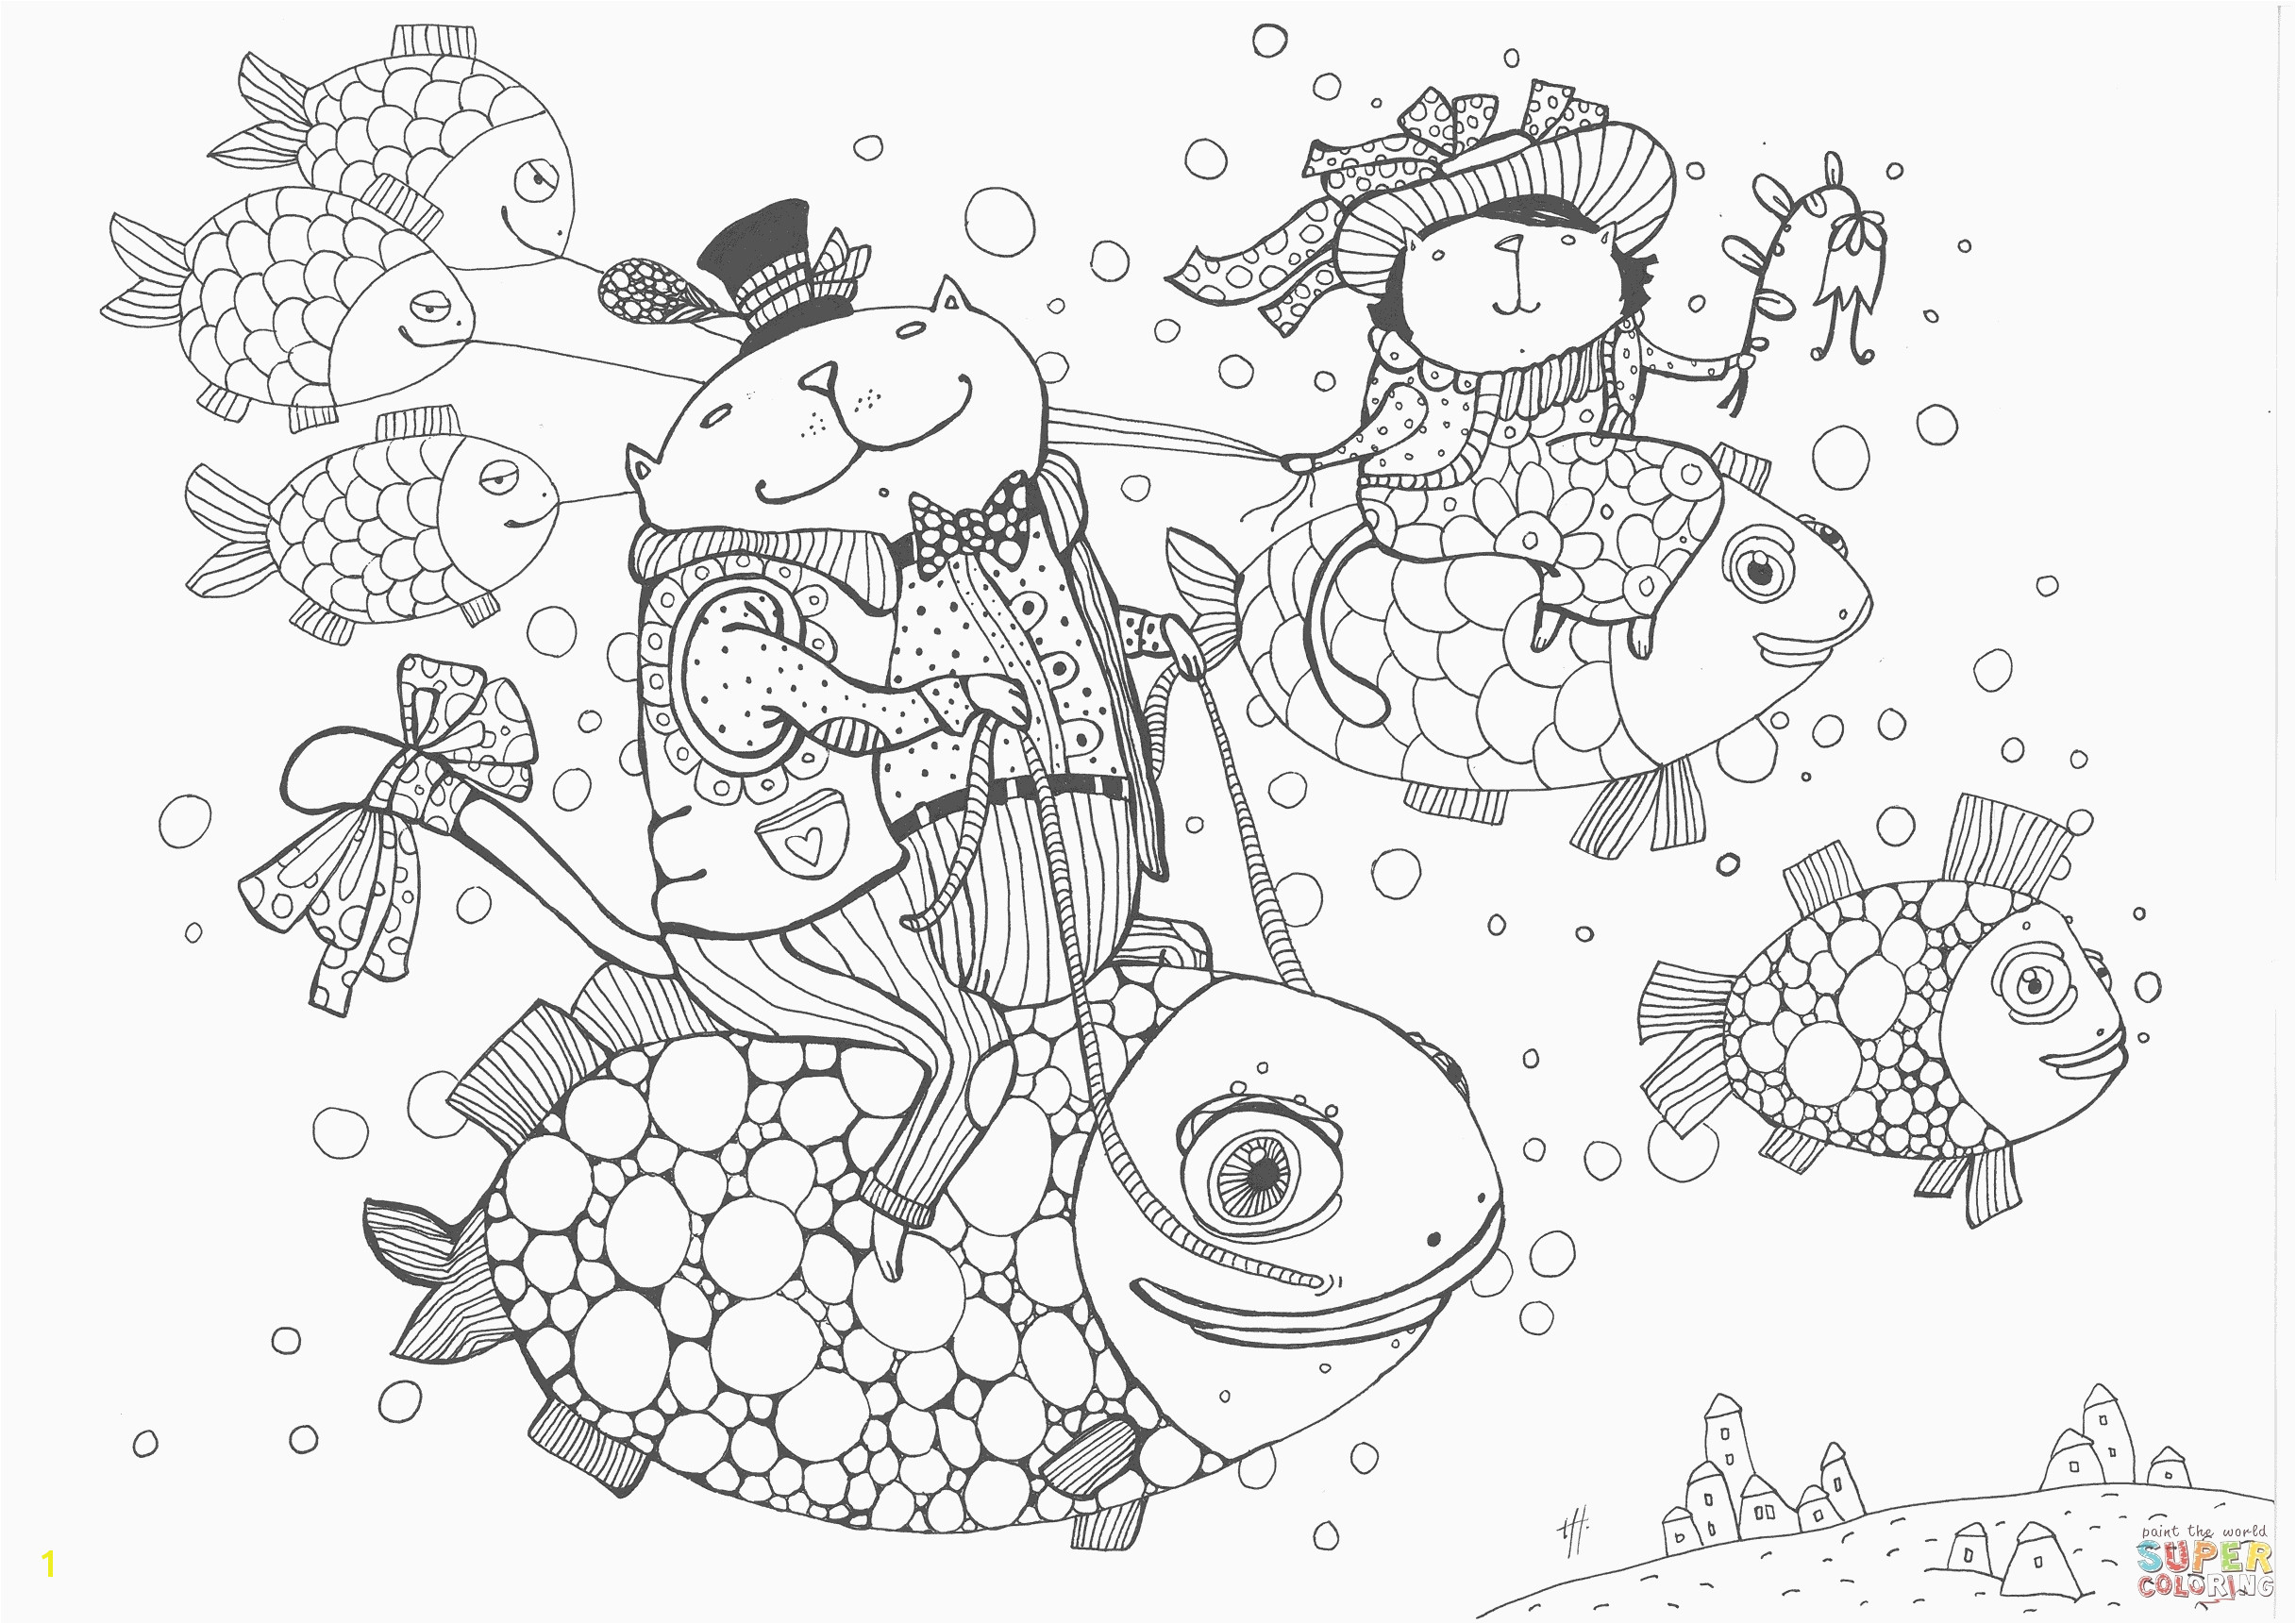 4 H Coloring Pages Coloring Pages Stuffed Animals Elegant Printable Coloring Pages for Kids Elegant